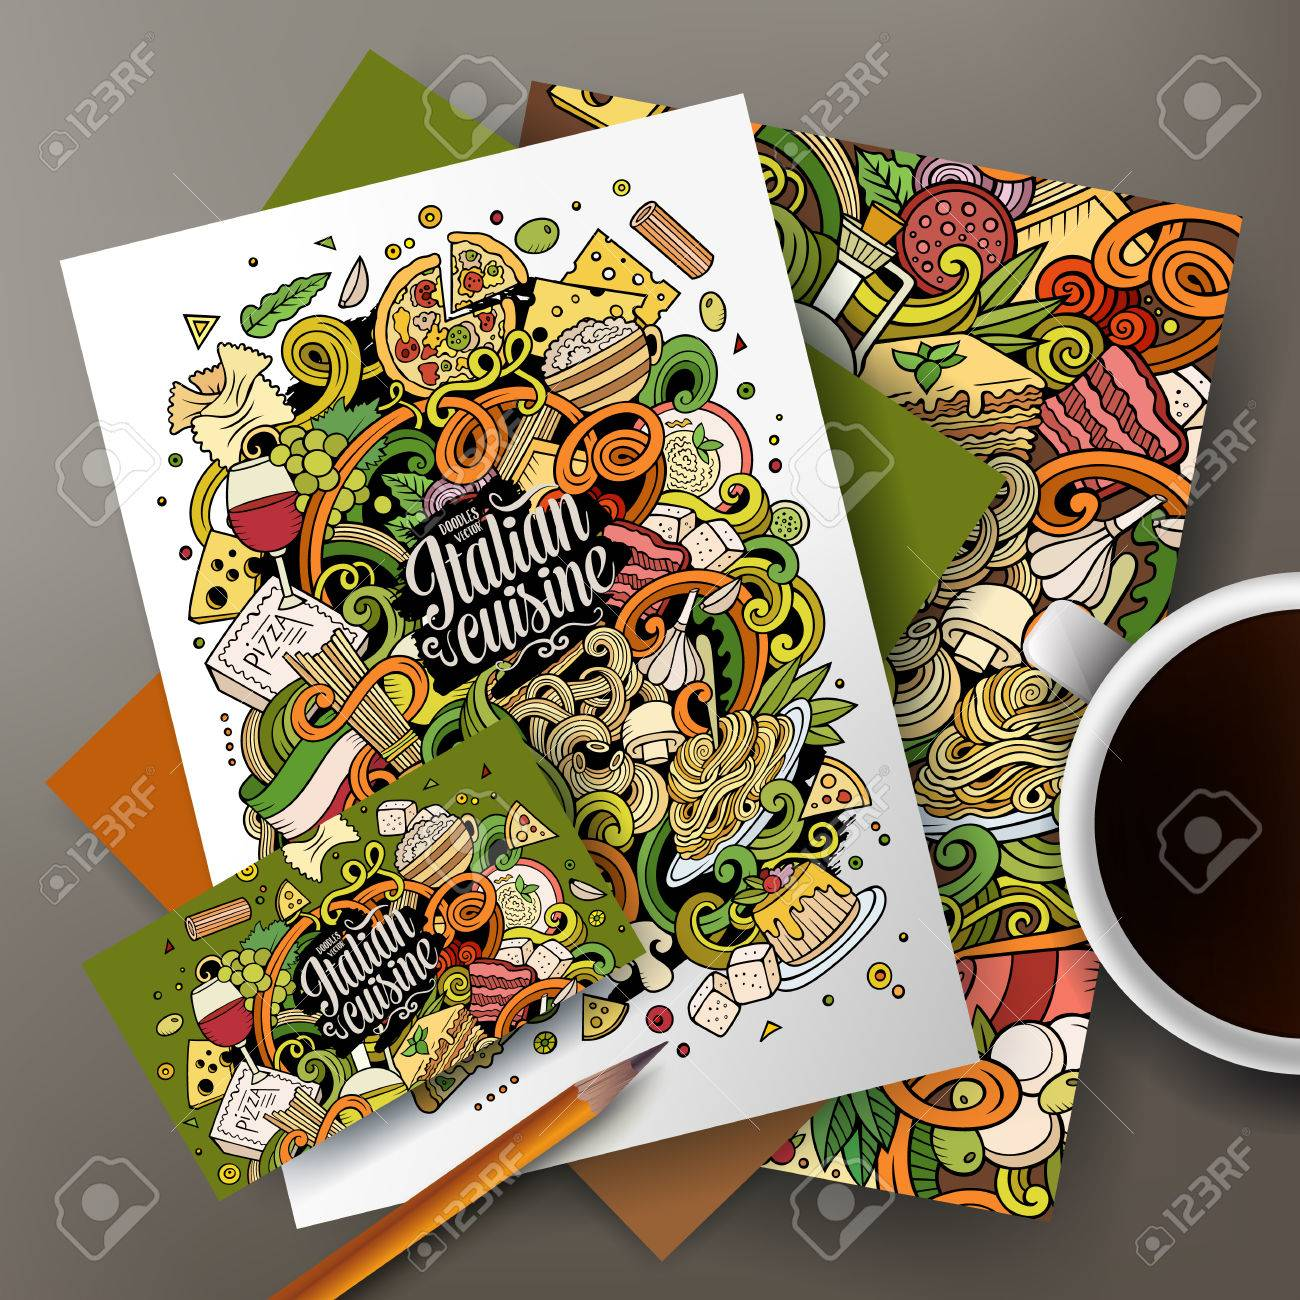 Cartoon Cute Colorful Vector Hand Drawn Doodles Italian Food Corporate Identity Set Templates Design Of